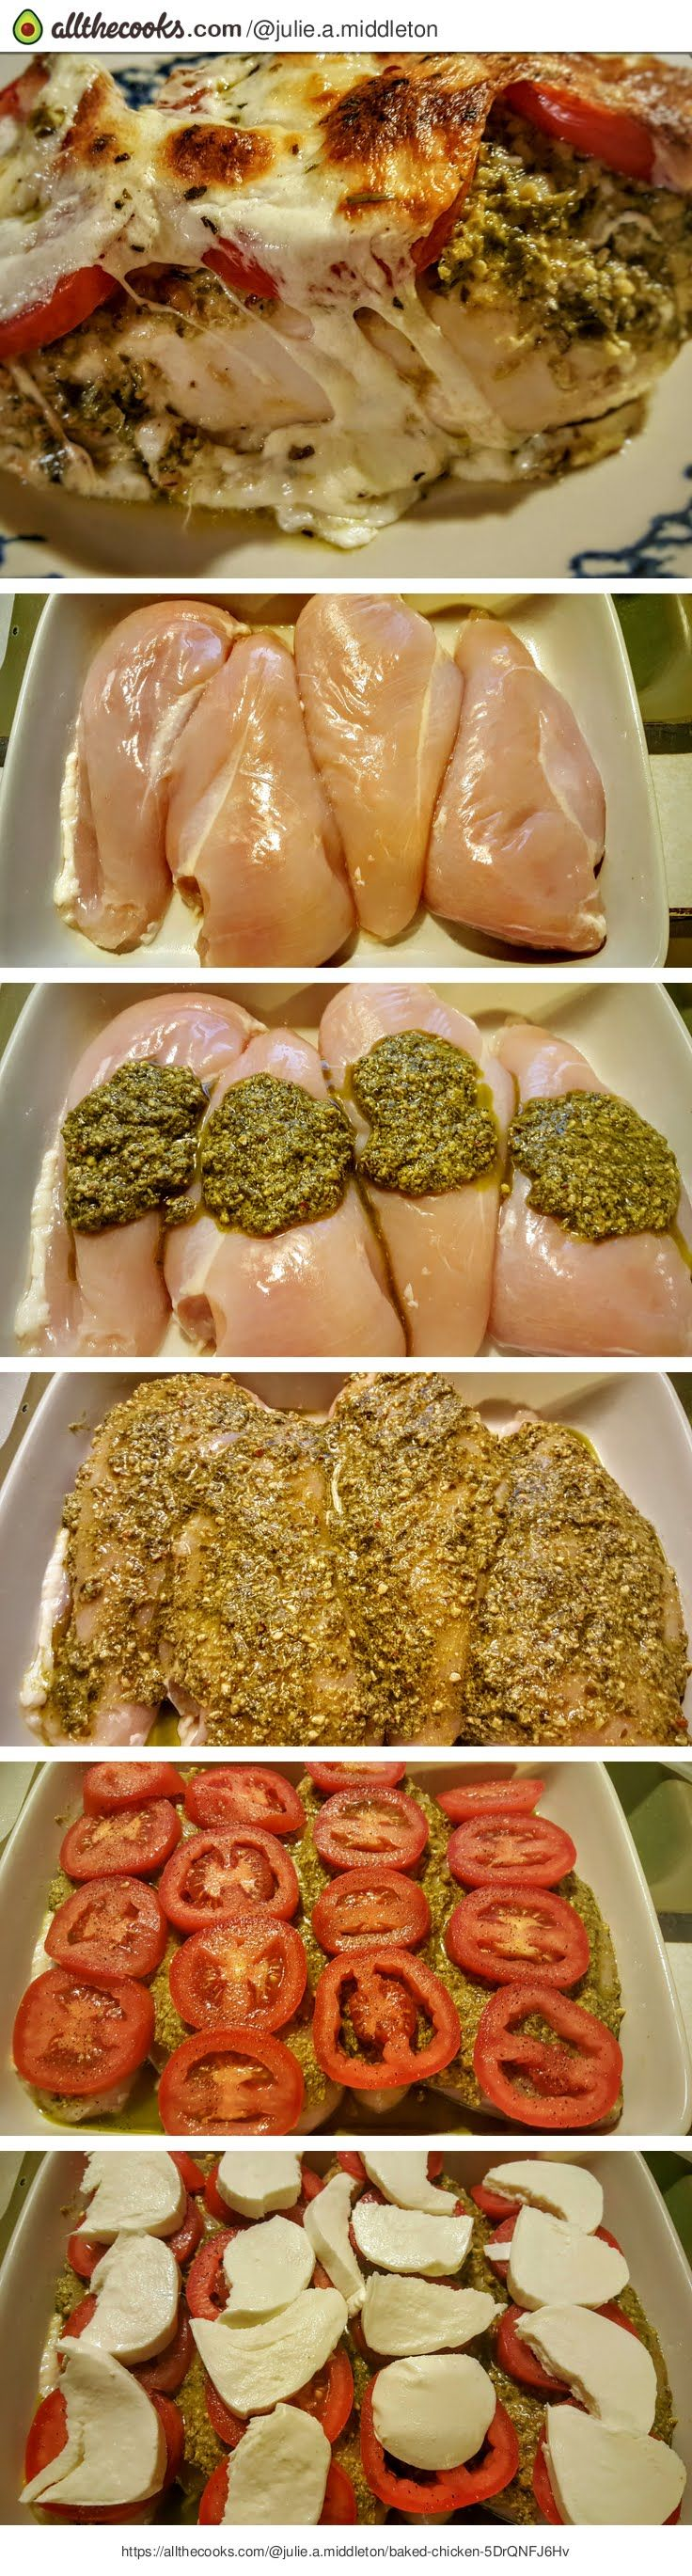 "Baked Chicken! ""The flavors burst in your mouth from start to finish - fresh tasting & easy to prepare"""